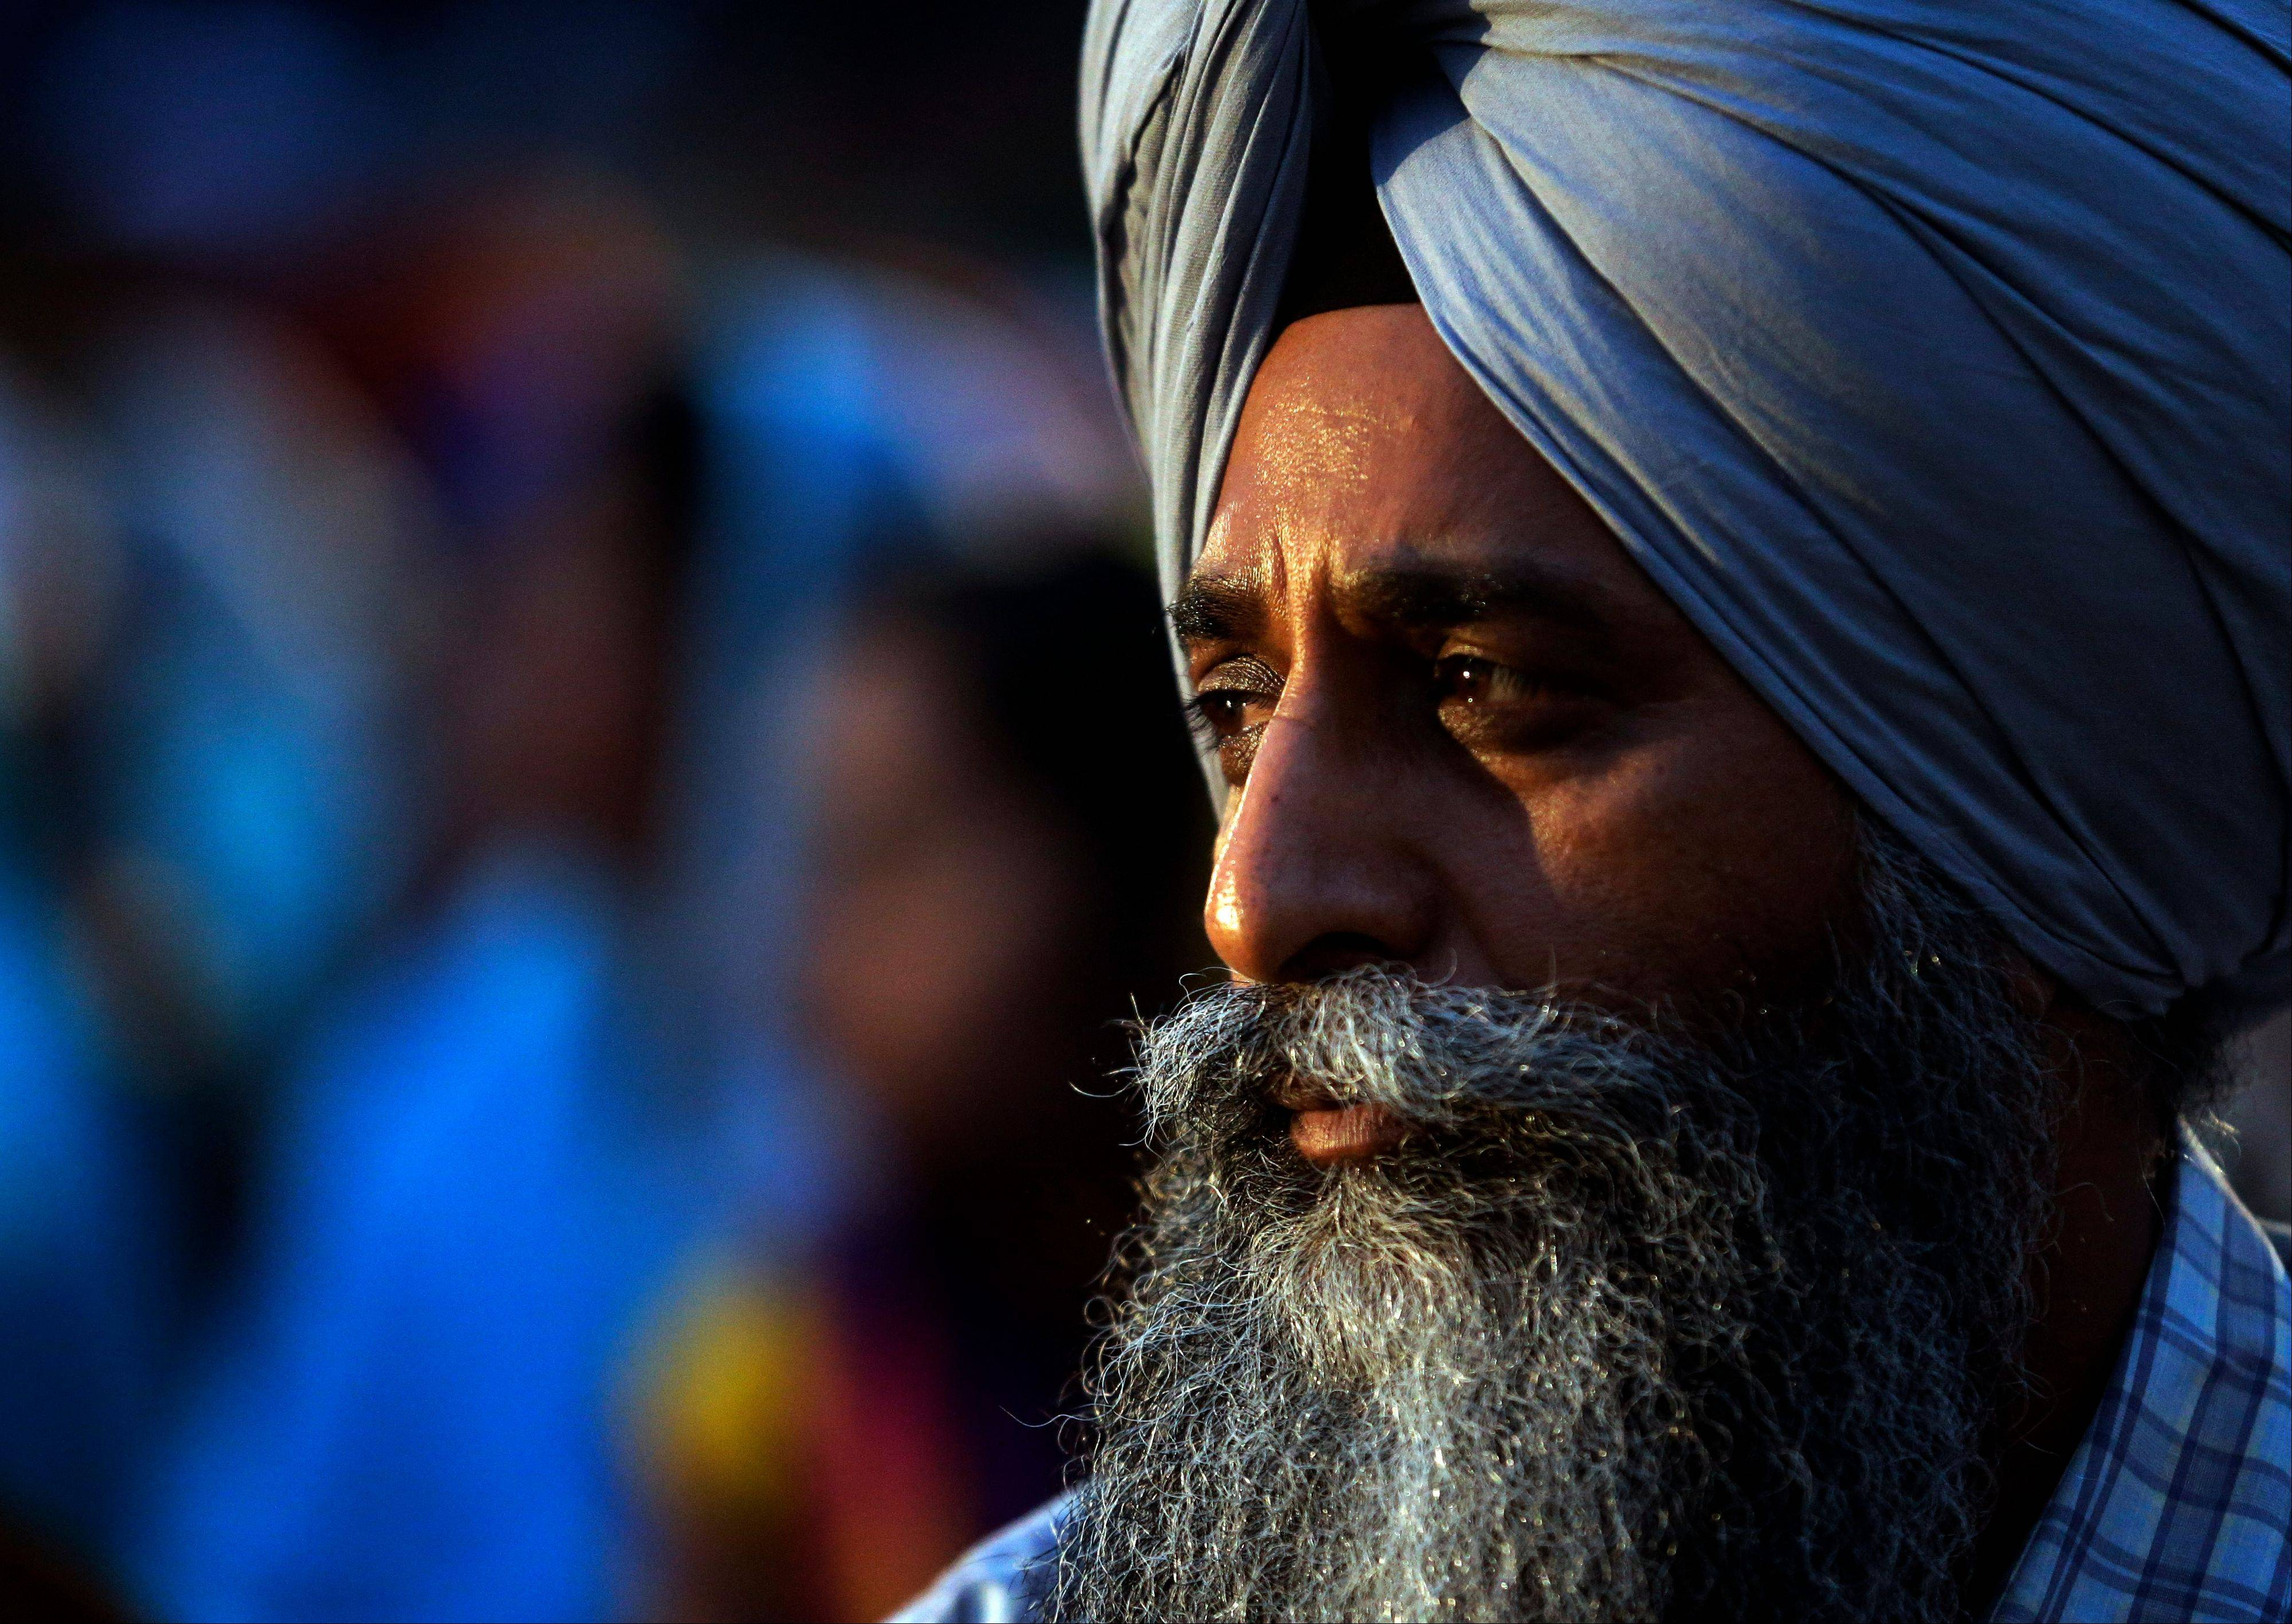 Getinder Singh Kigtra participates in a candlelight vigil at the Sikh Temple of Wisconsin to mark the one-year anniversary of the shooting rampage that left six dead, Monday, Aug. 5, 2013, in Oak Creek, Wis. The white supremacist gunman, who wounded five other worshippers and an Oak Creek police officer, killed himself in the parking lot.